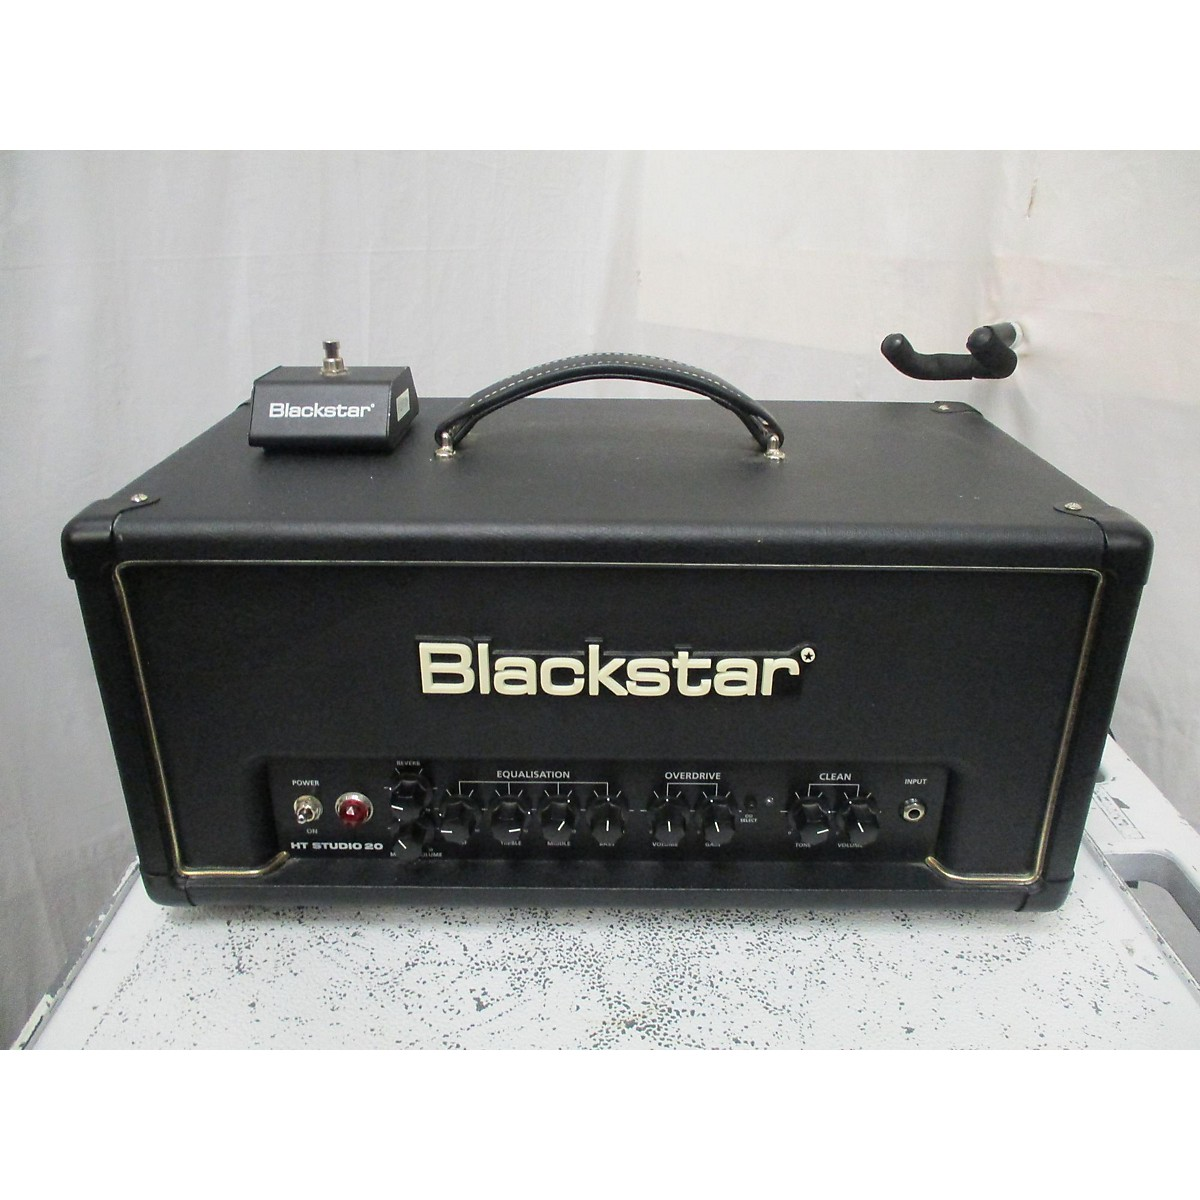 Blackstar Venue Series HT Studio 20 20W Tube Guitar Combo Amp